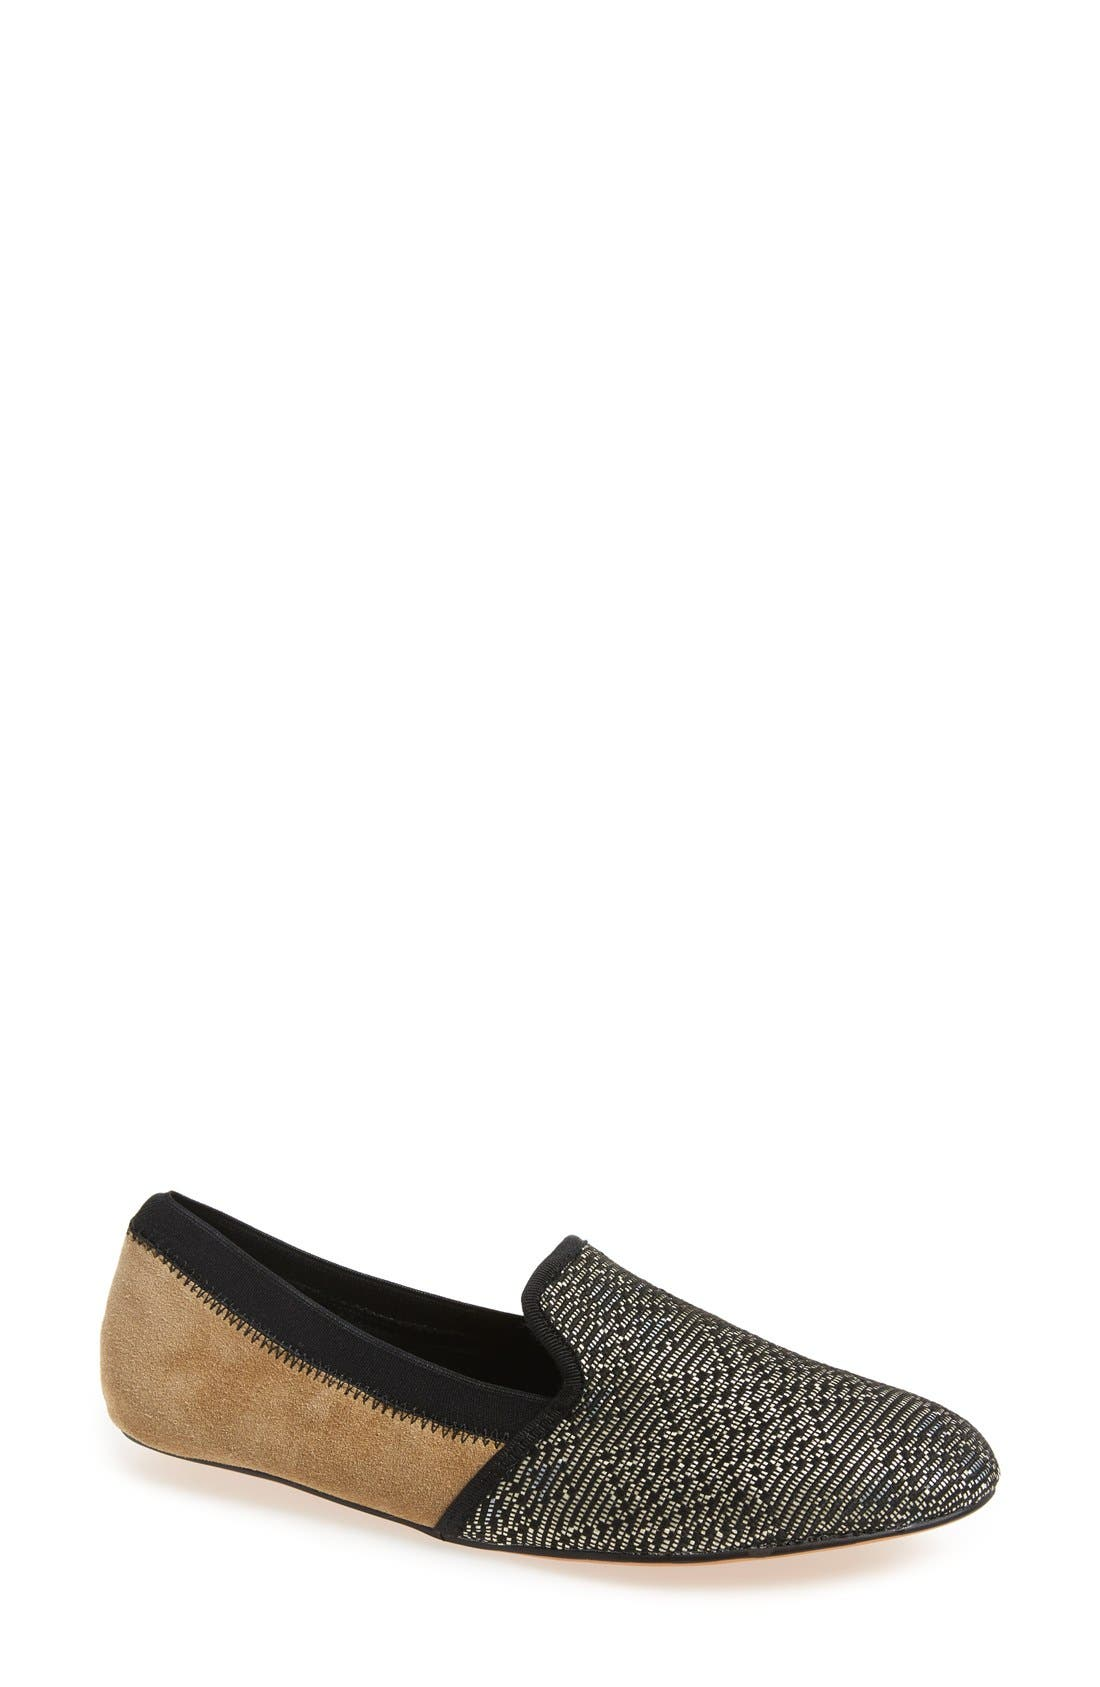 DANIEL GREEN Lucca Slipper